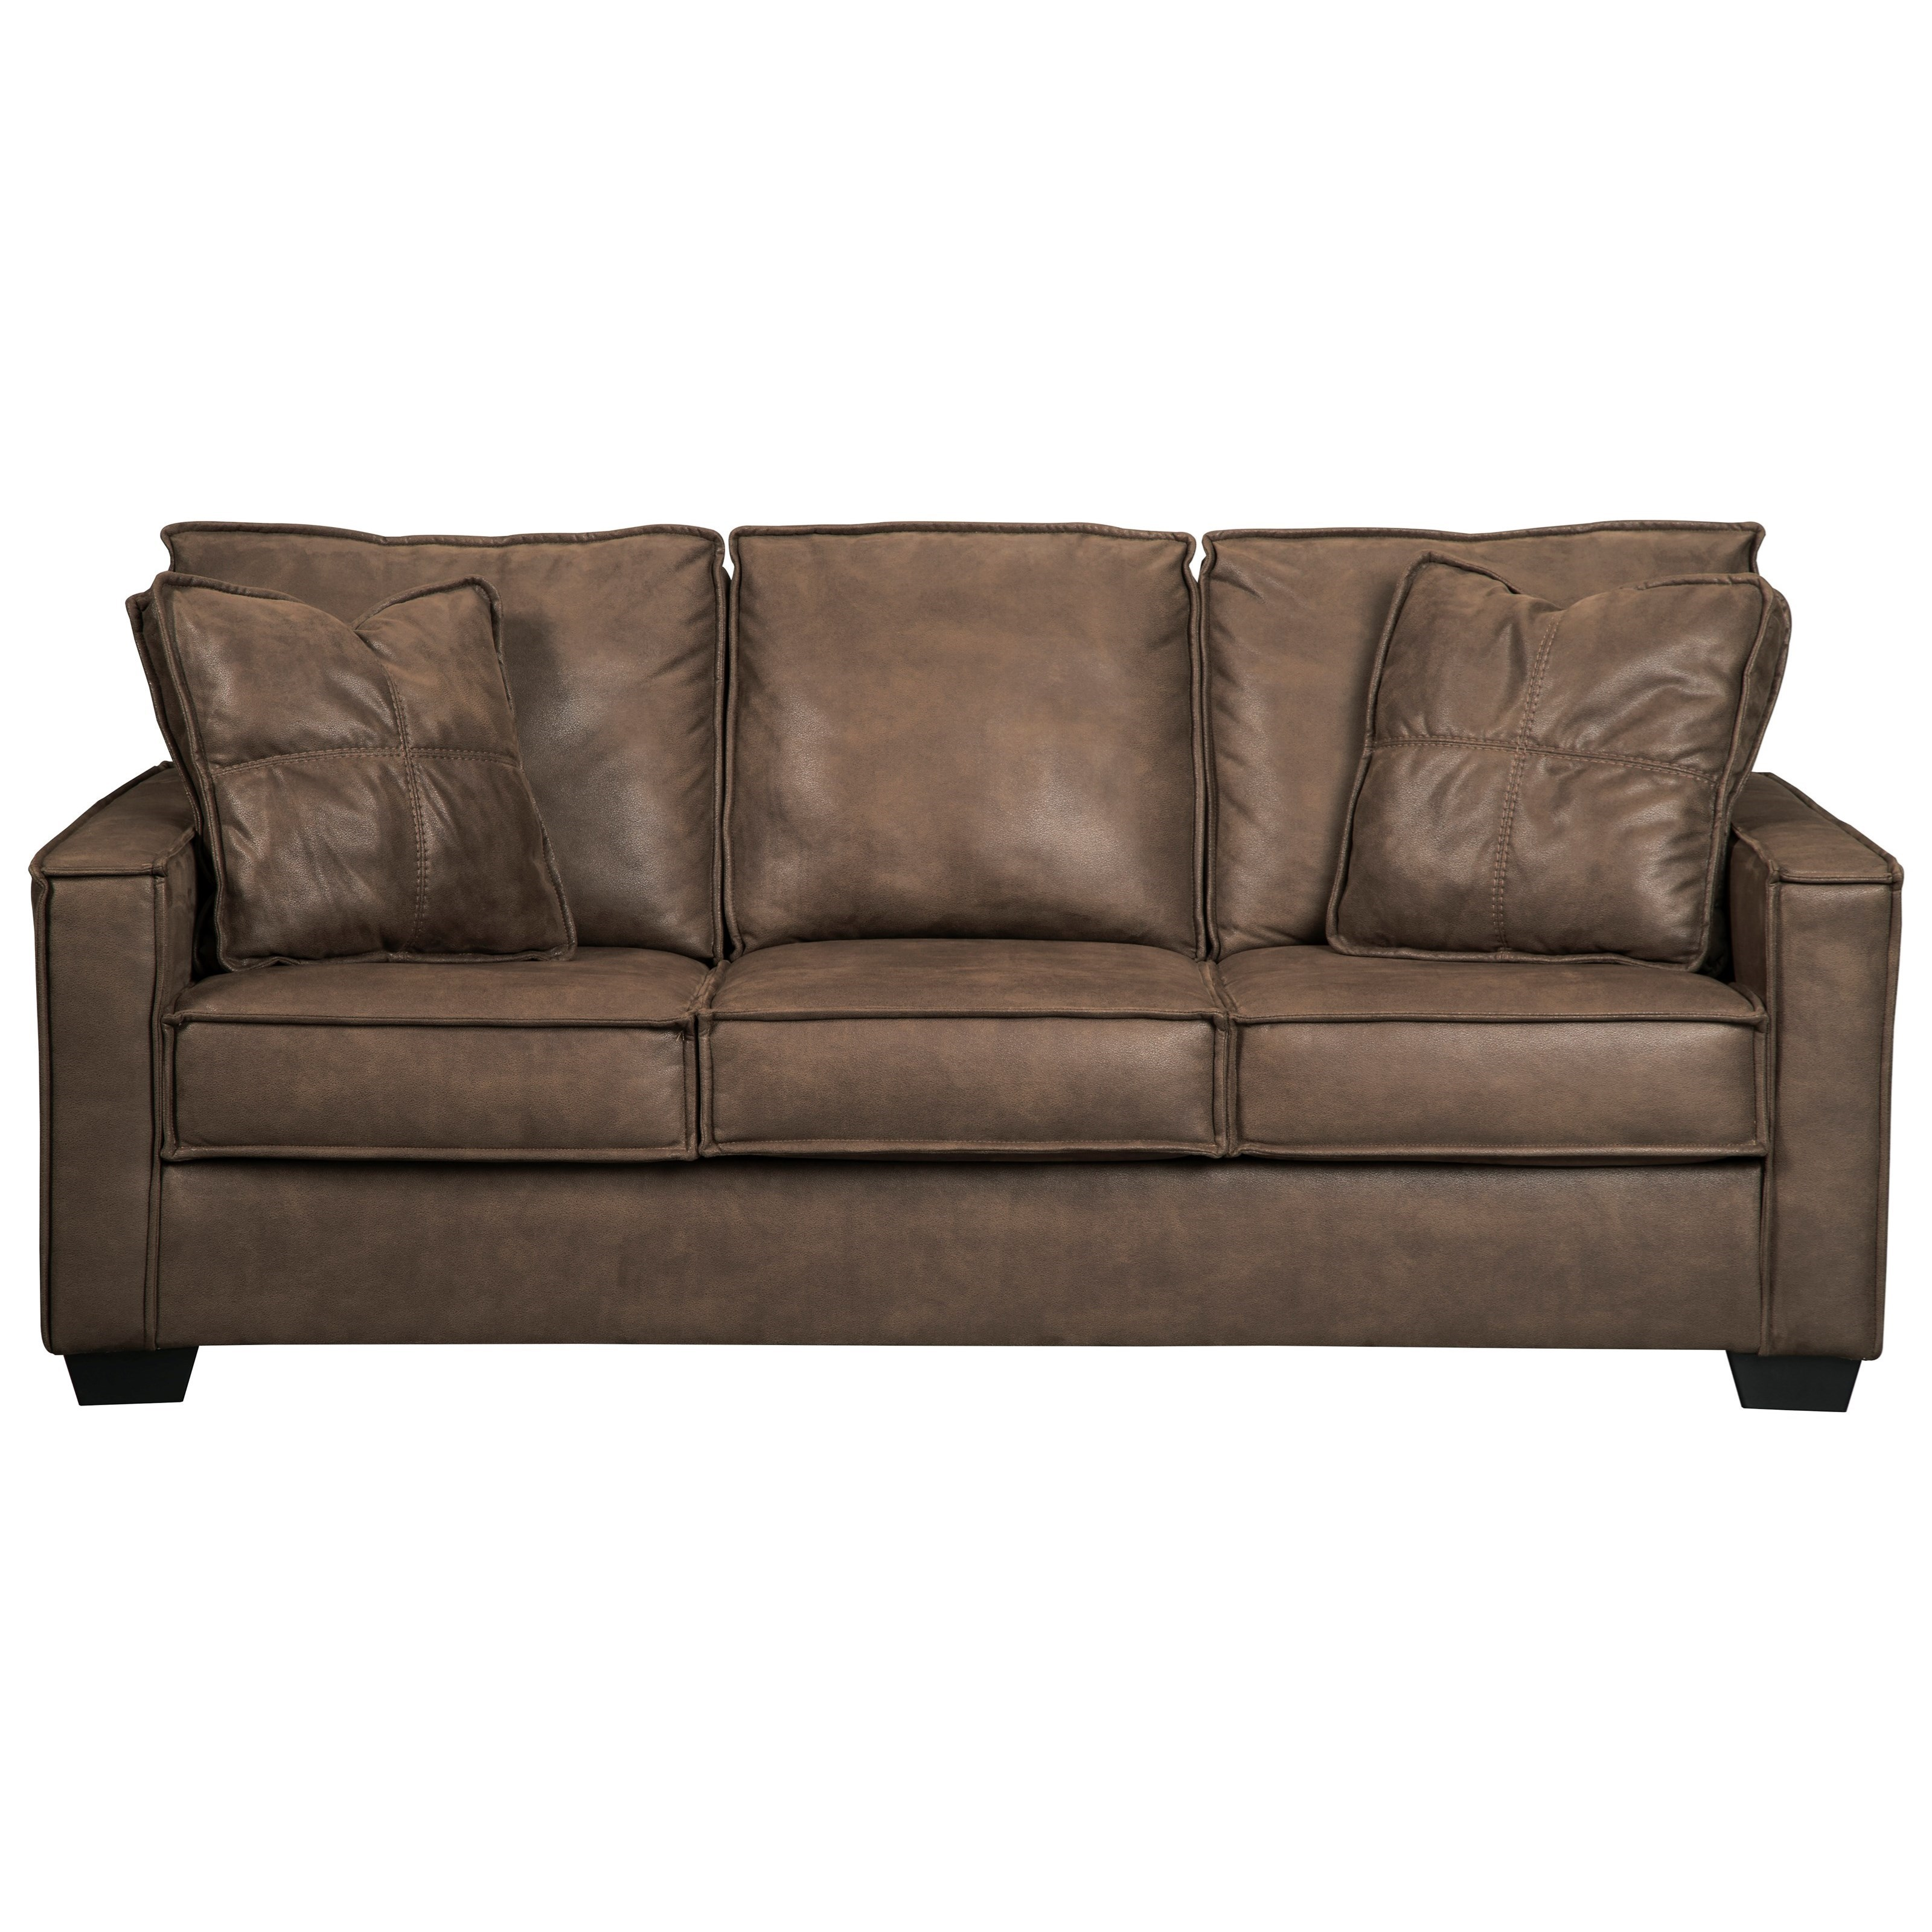 Great Signature Design By Ashley Terrington Faux Leather Sofa With Piecrust Welt  Trim